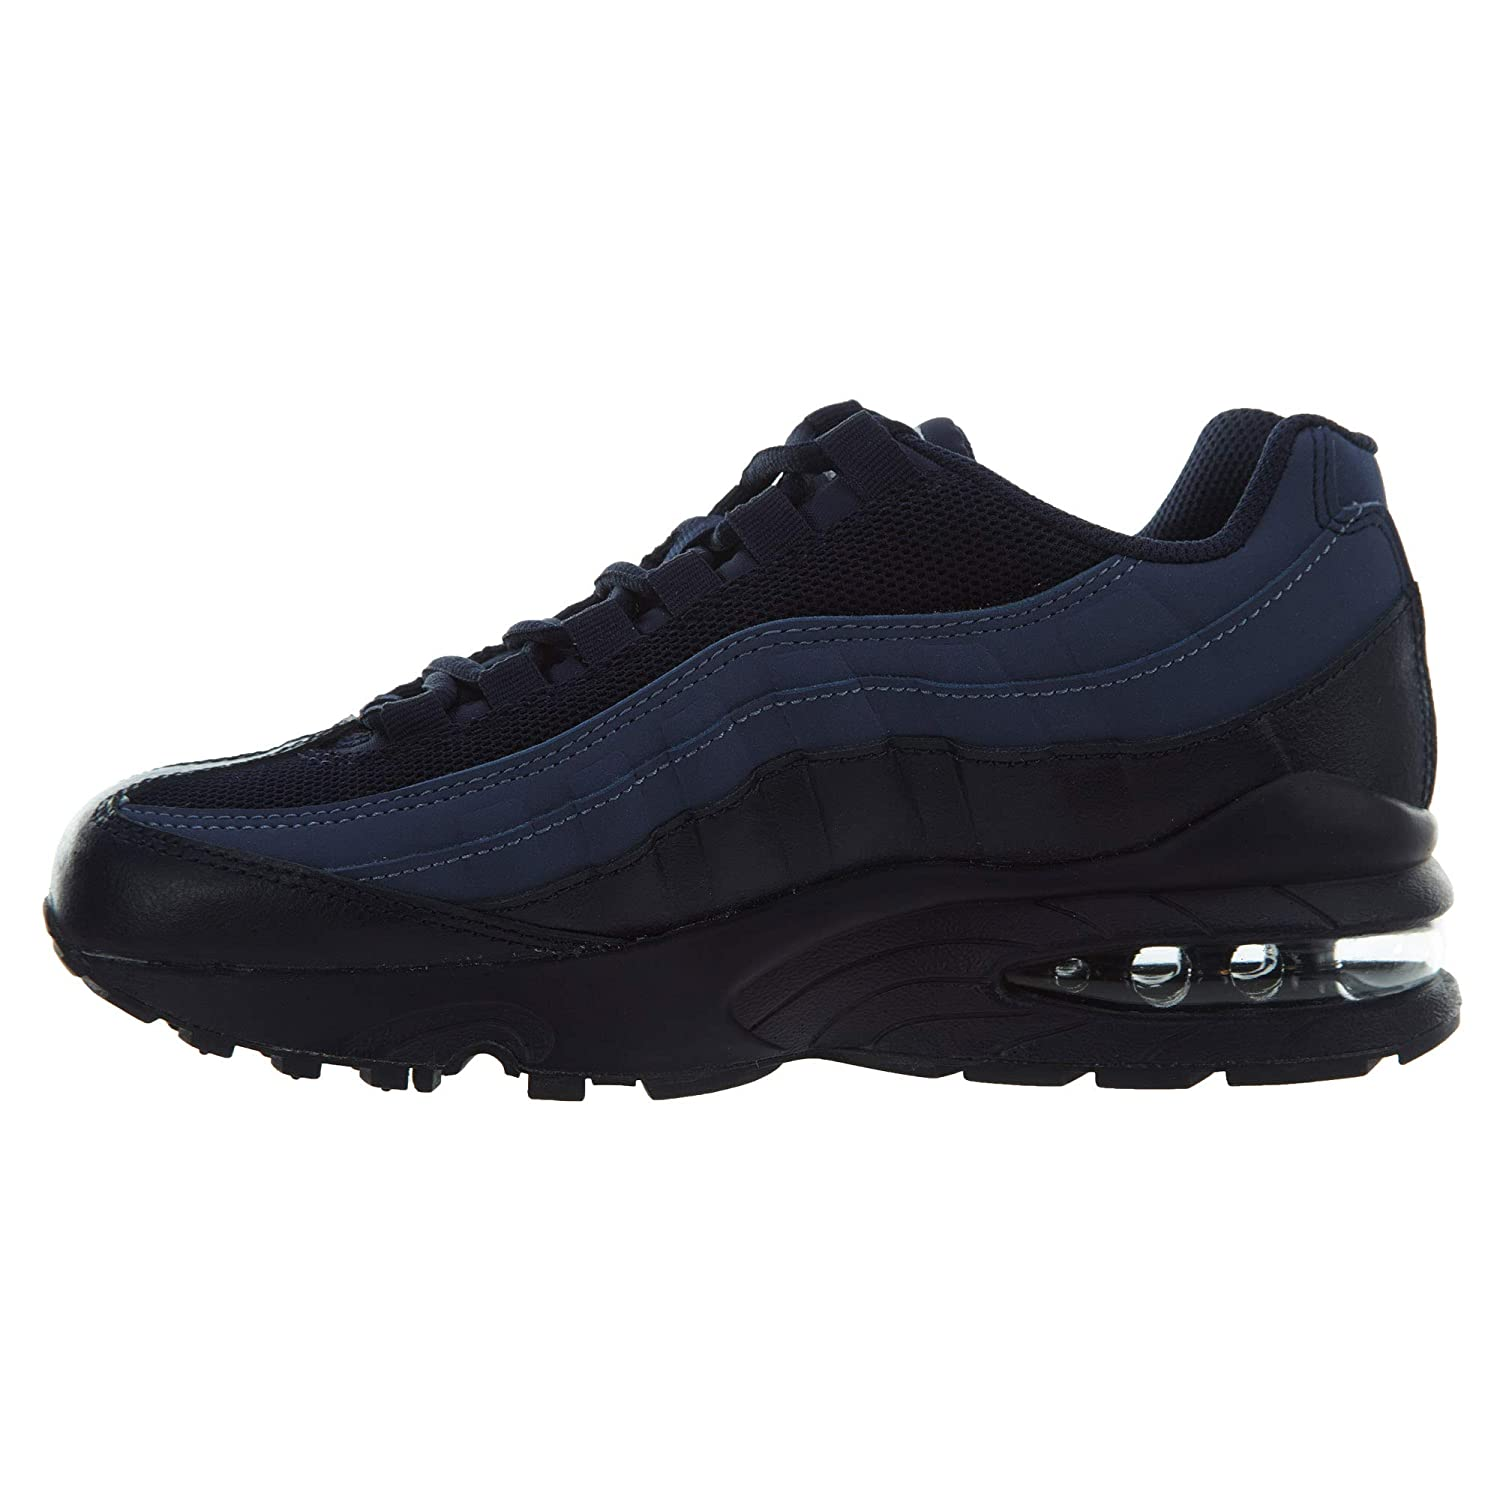 best authentic 0277b 45596 Amazon.com Nike Air Max 95 Nike Shoes